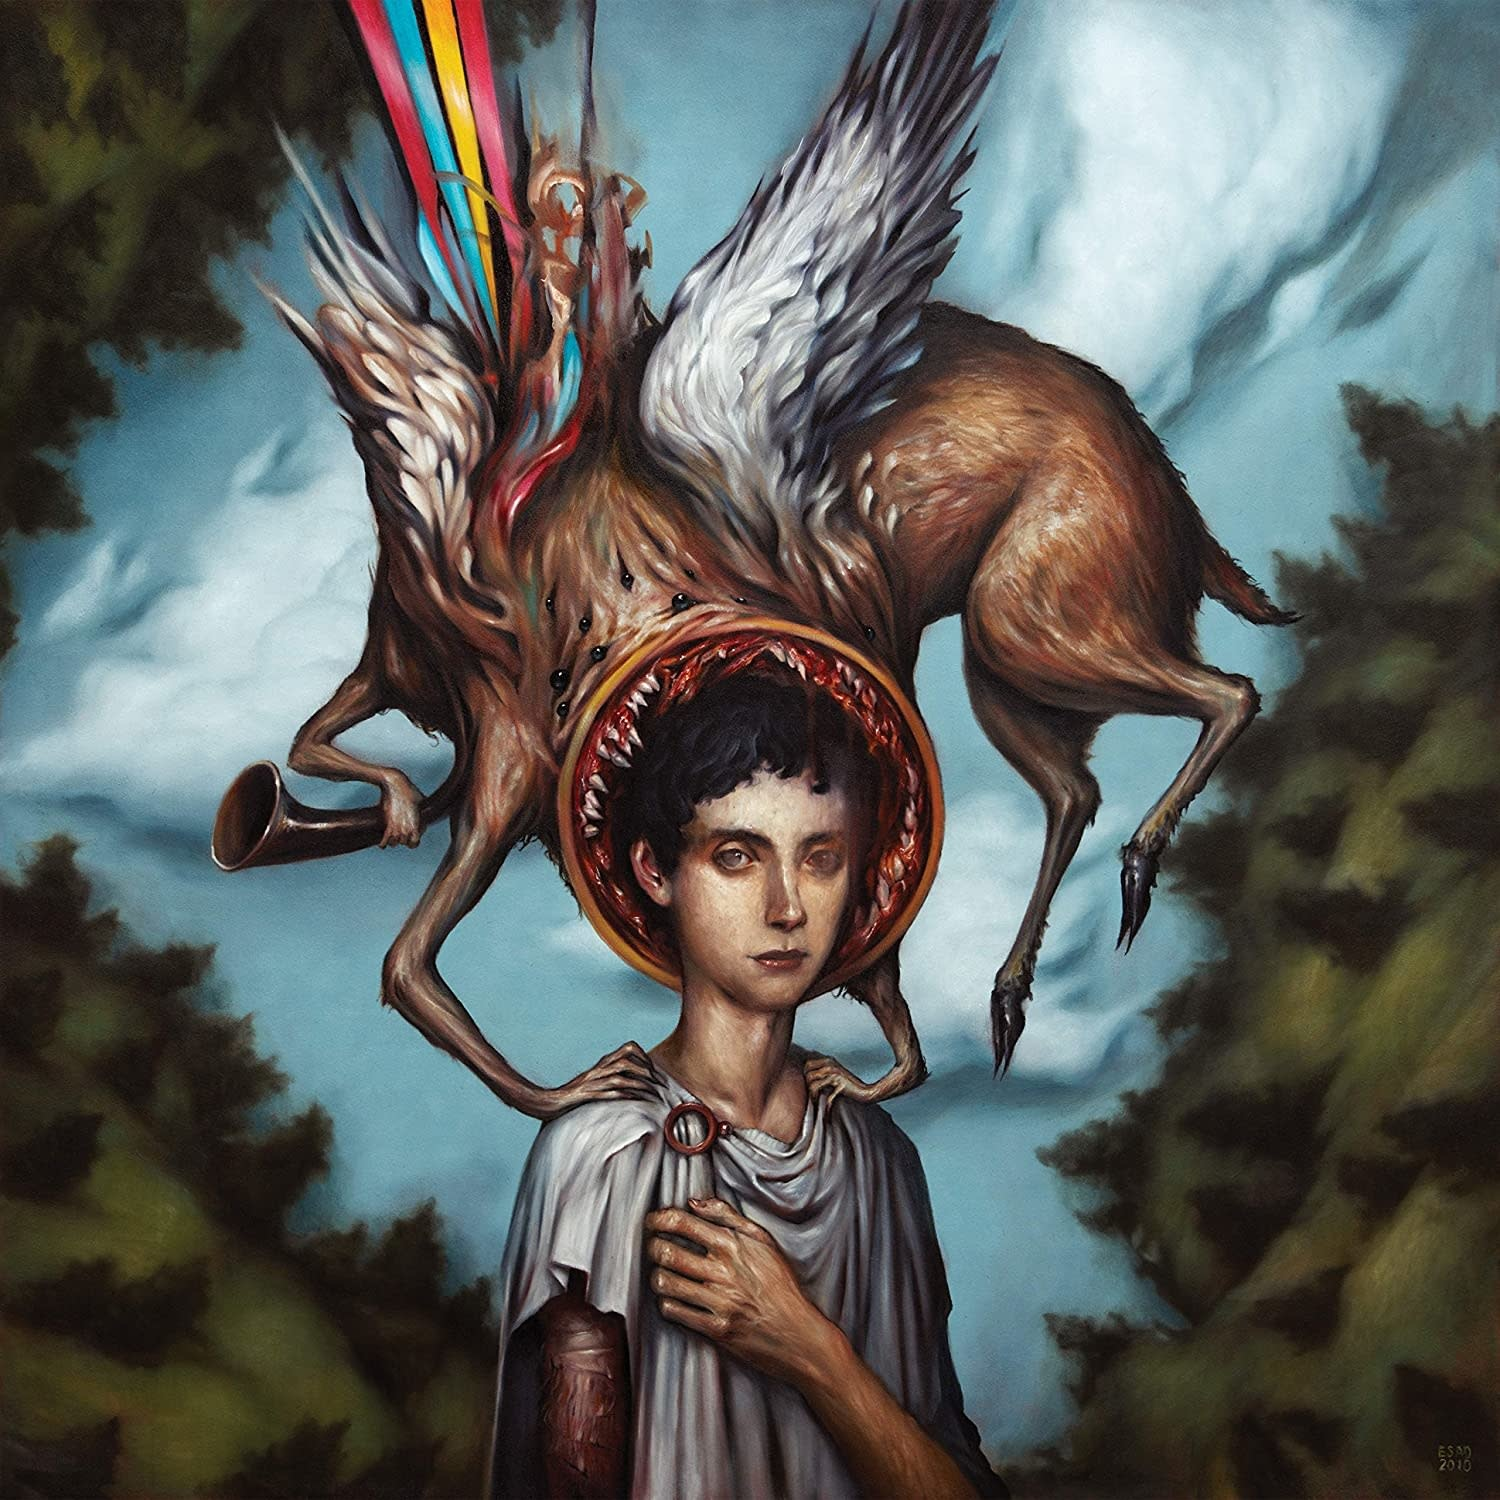 Circa Survive - Blue Sky Noise (10th Anniversary Edition)